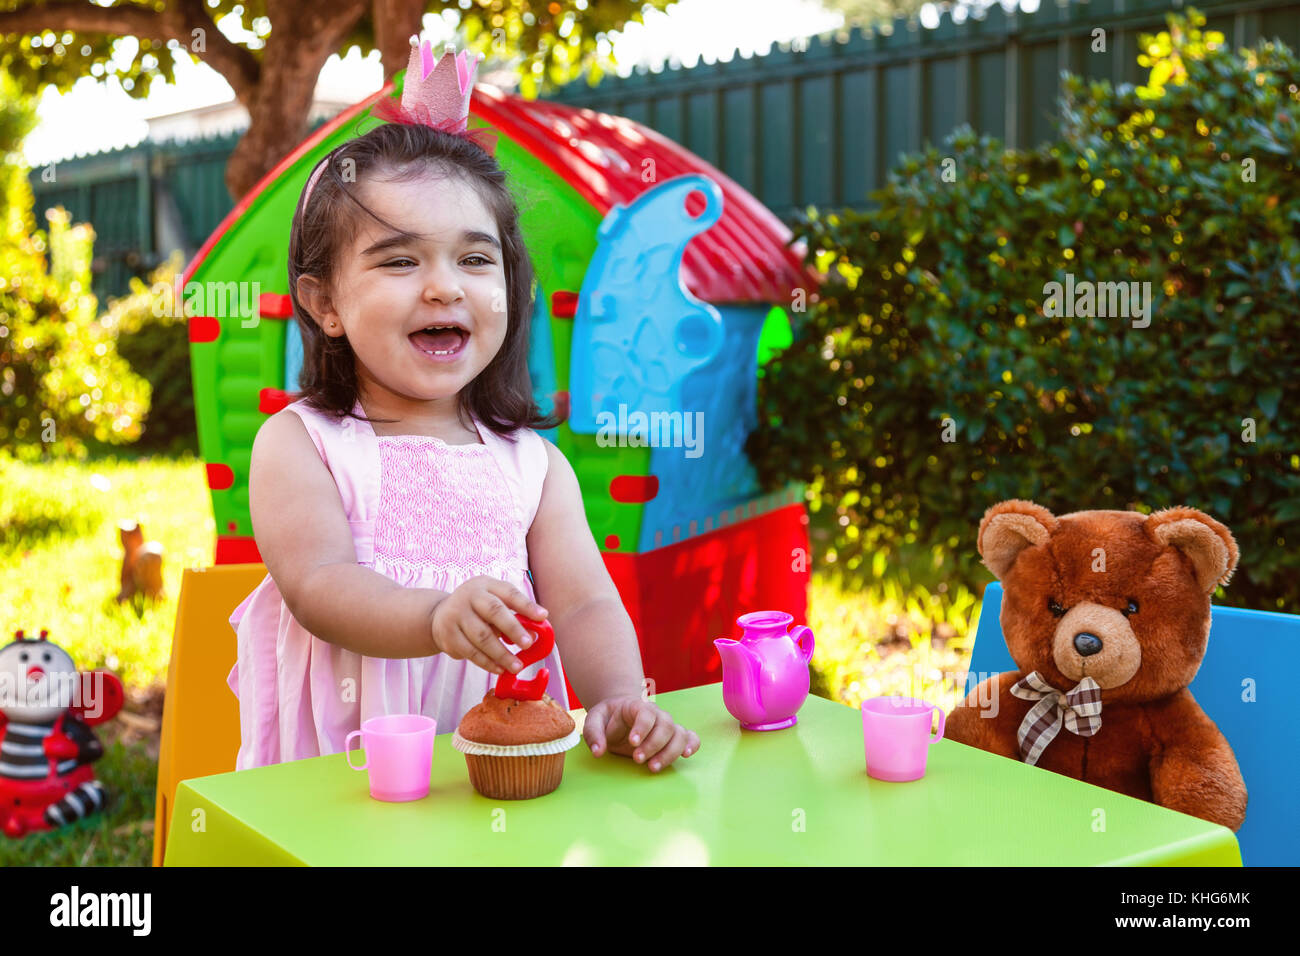 Happy laughing baby toddler girl in outdoor second birthday party holding candle. Best friend Teddy Bear, playhouse - Stock Image